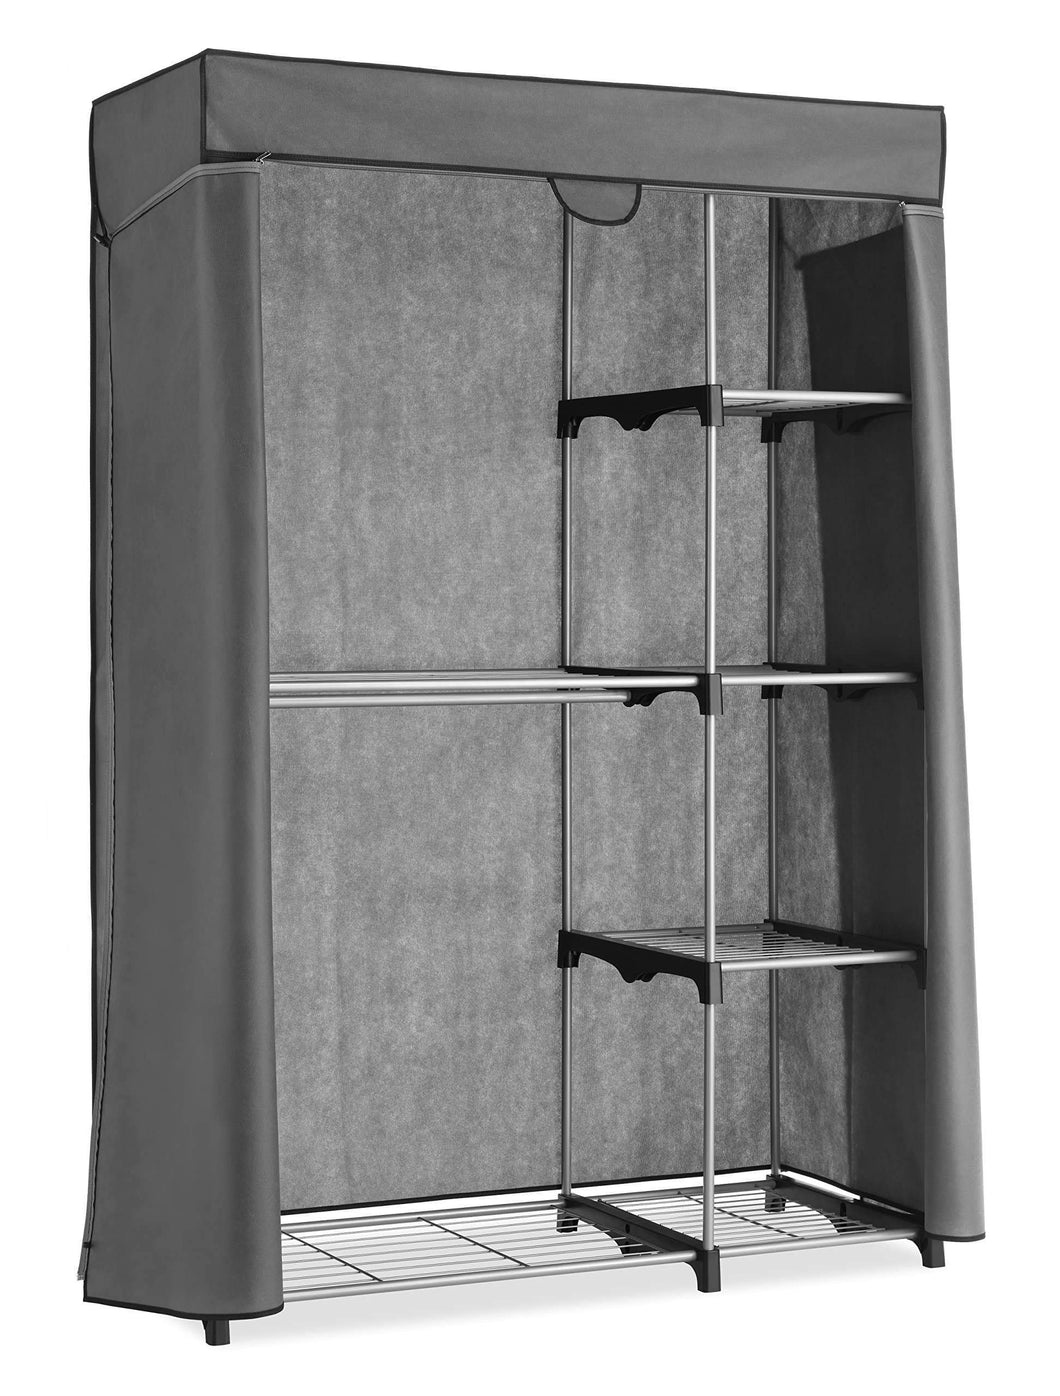 Related whitmor deluxe utility closet 5 extra strong shelves removable cover